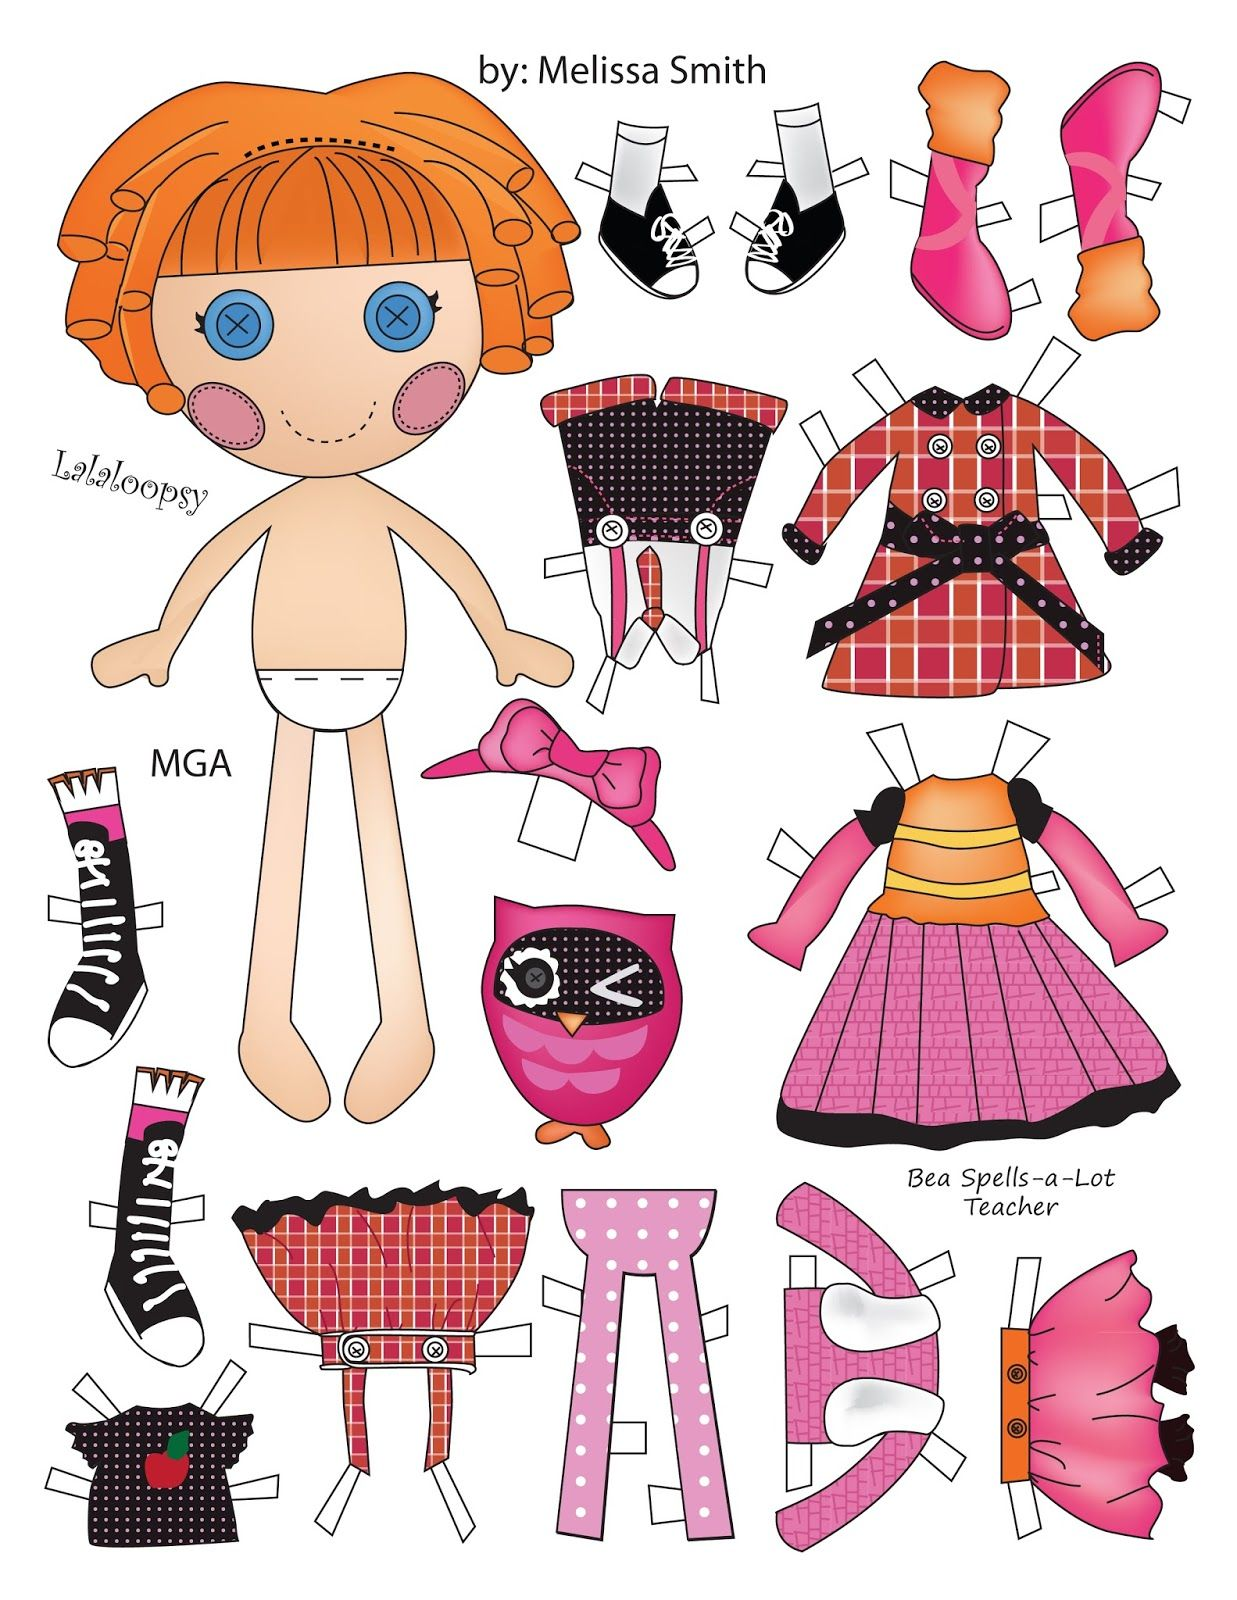 picture relating to Paper Dolls Printable called Lalaloopsy Paper Dolls pt 2 Lalaloppsy Printables Barbie